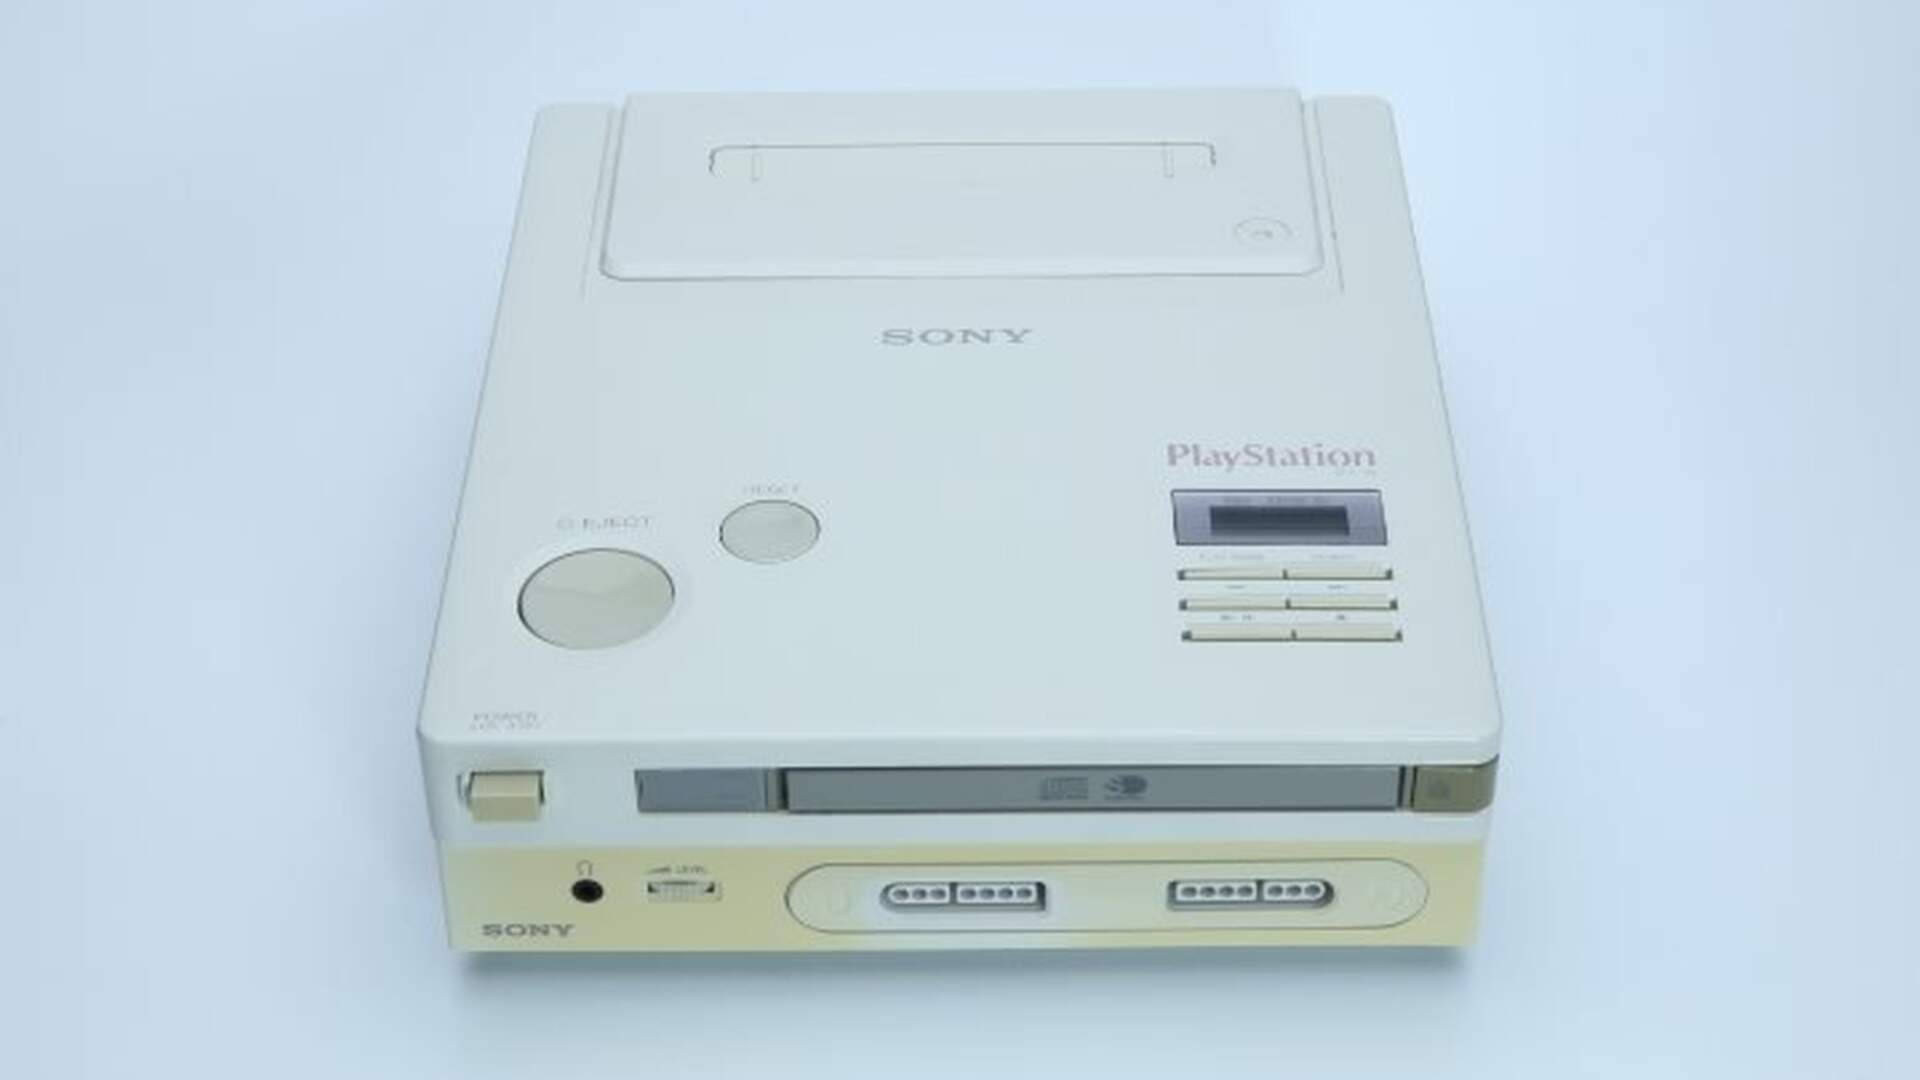 The Owner of the Legendary Nintendo PlayStation Prototype Wants to Put It Up For Sale